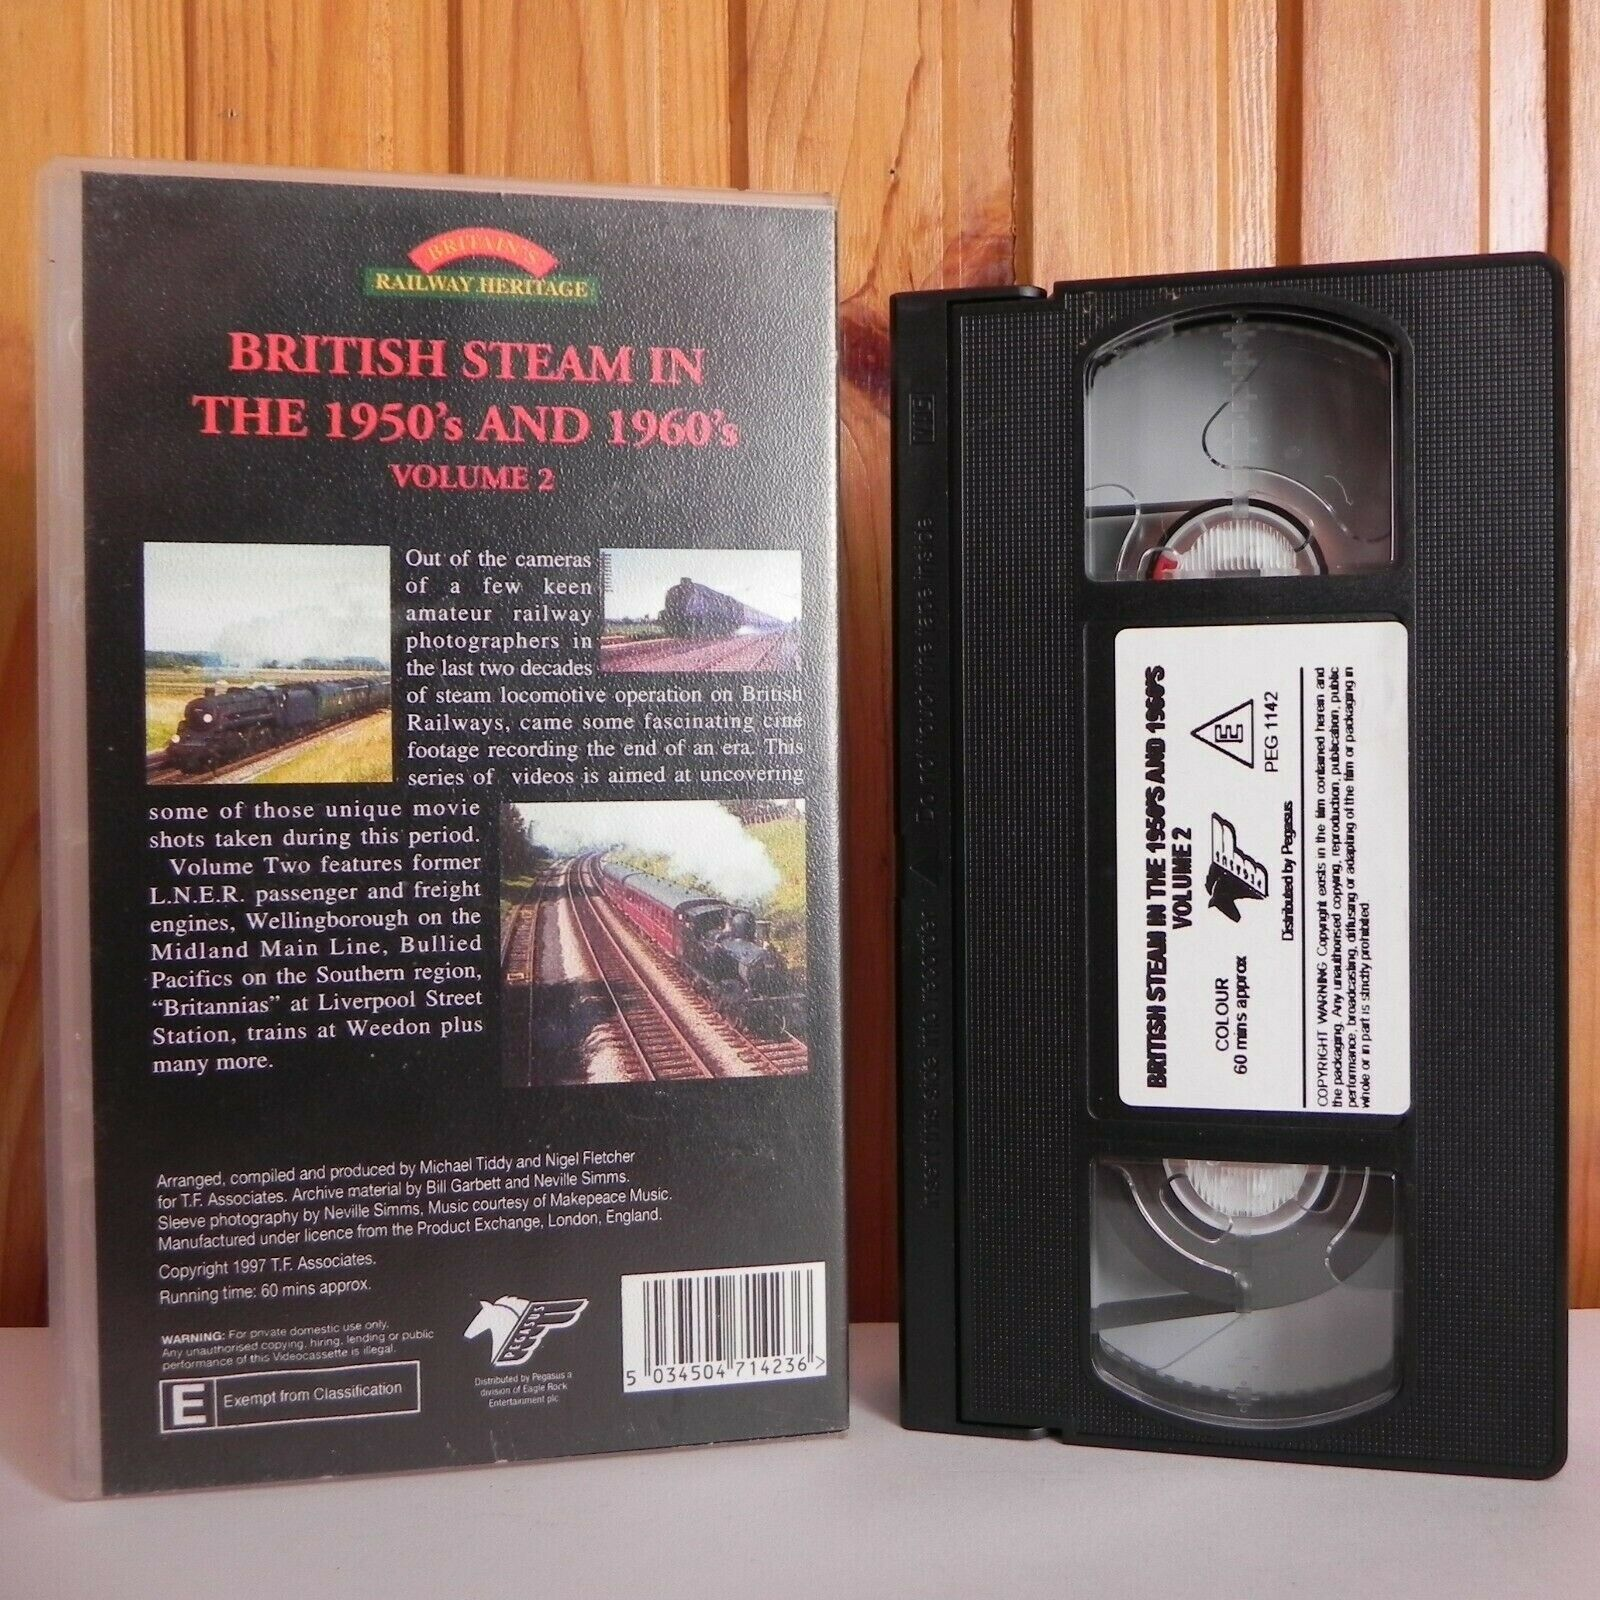 British Steam In The 1950's And 1960's - Volume 2 - Railway Heritage - Pal VHS